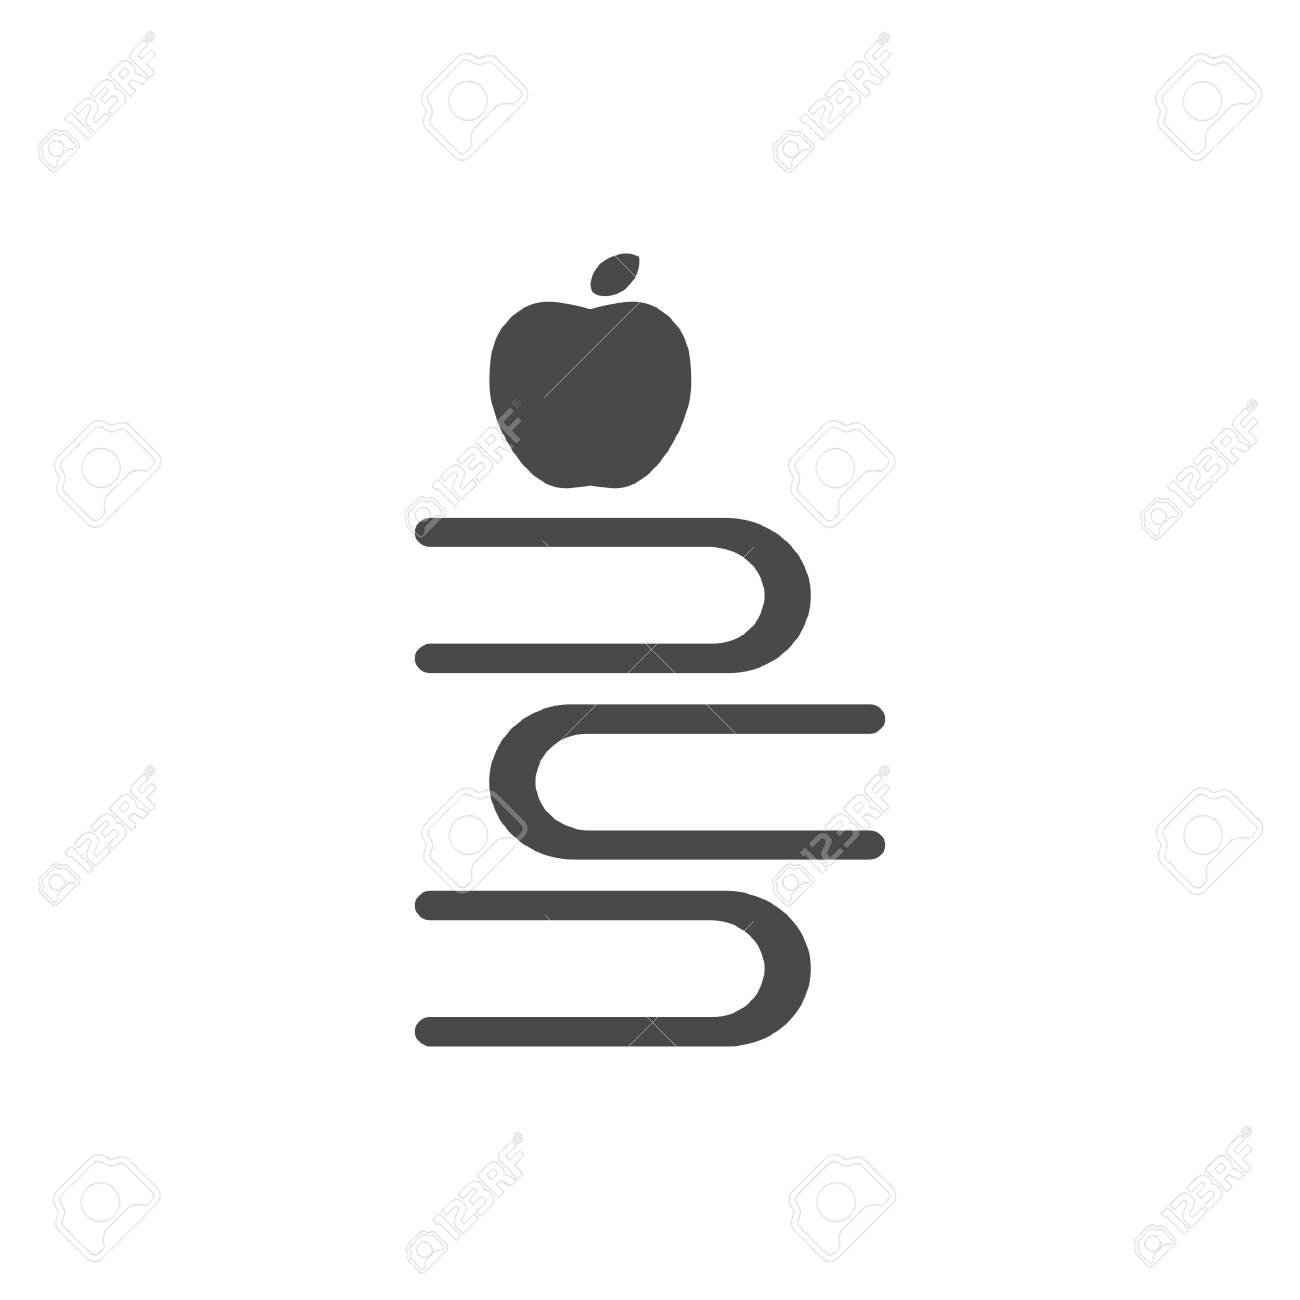 apple with stack of books - 106668185